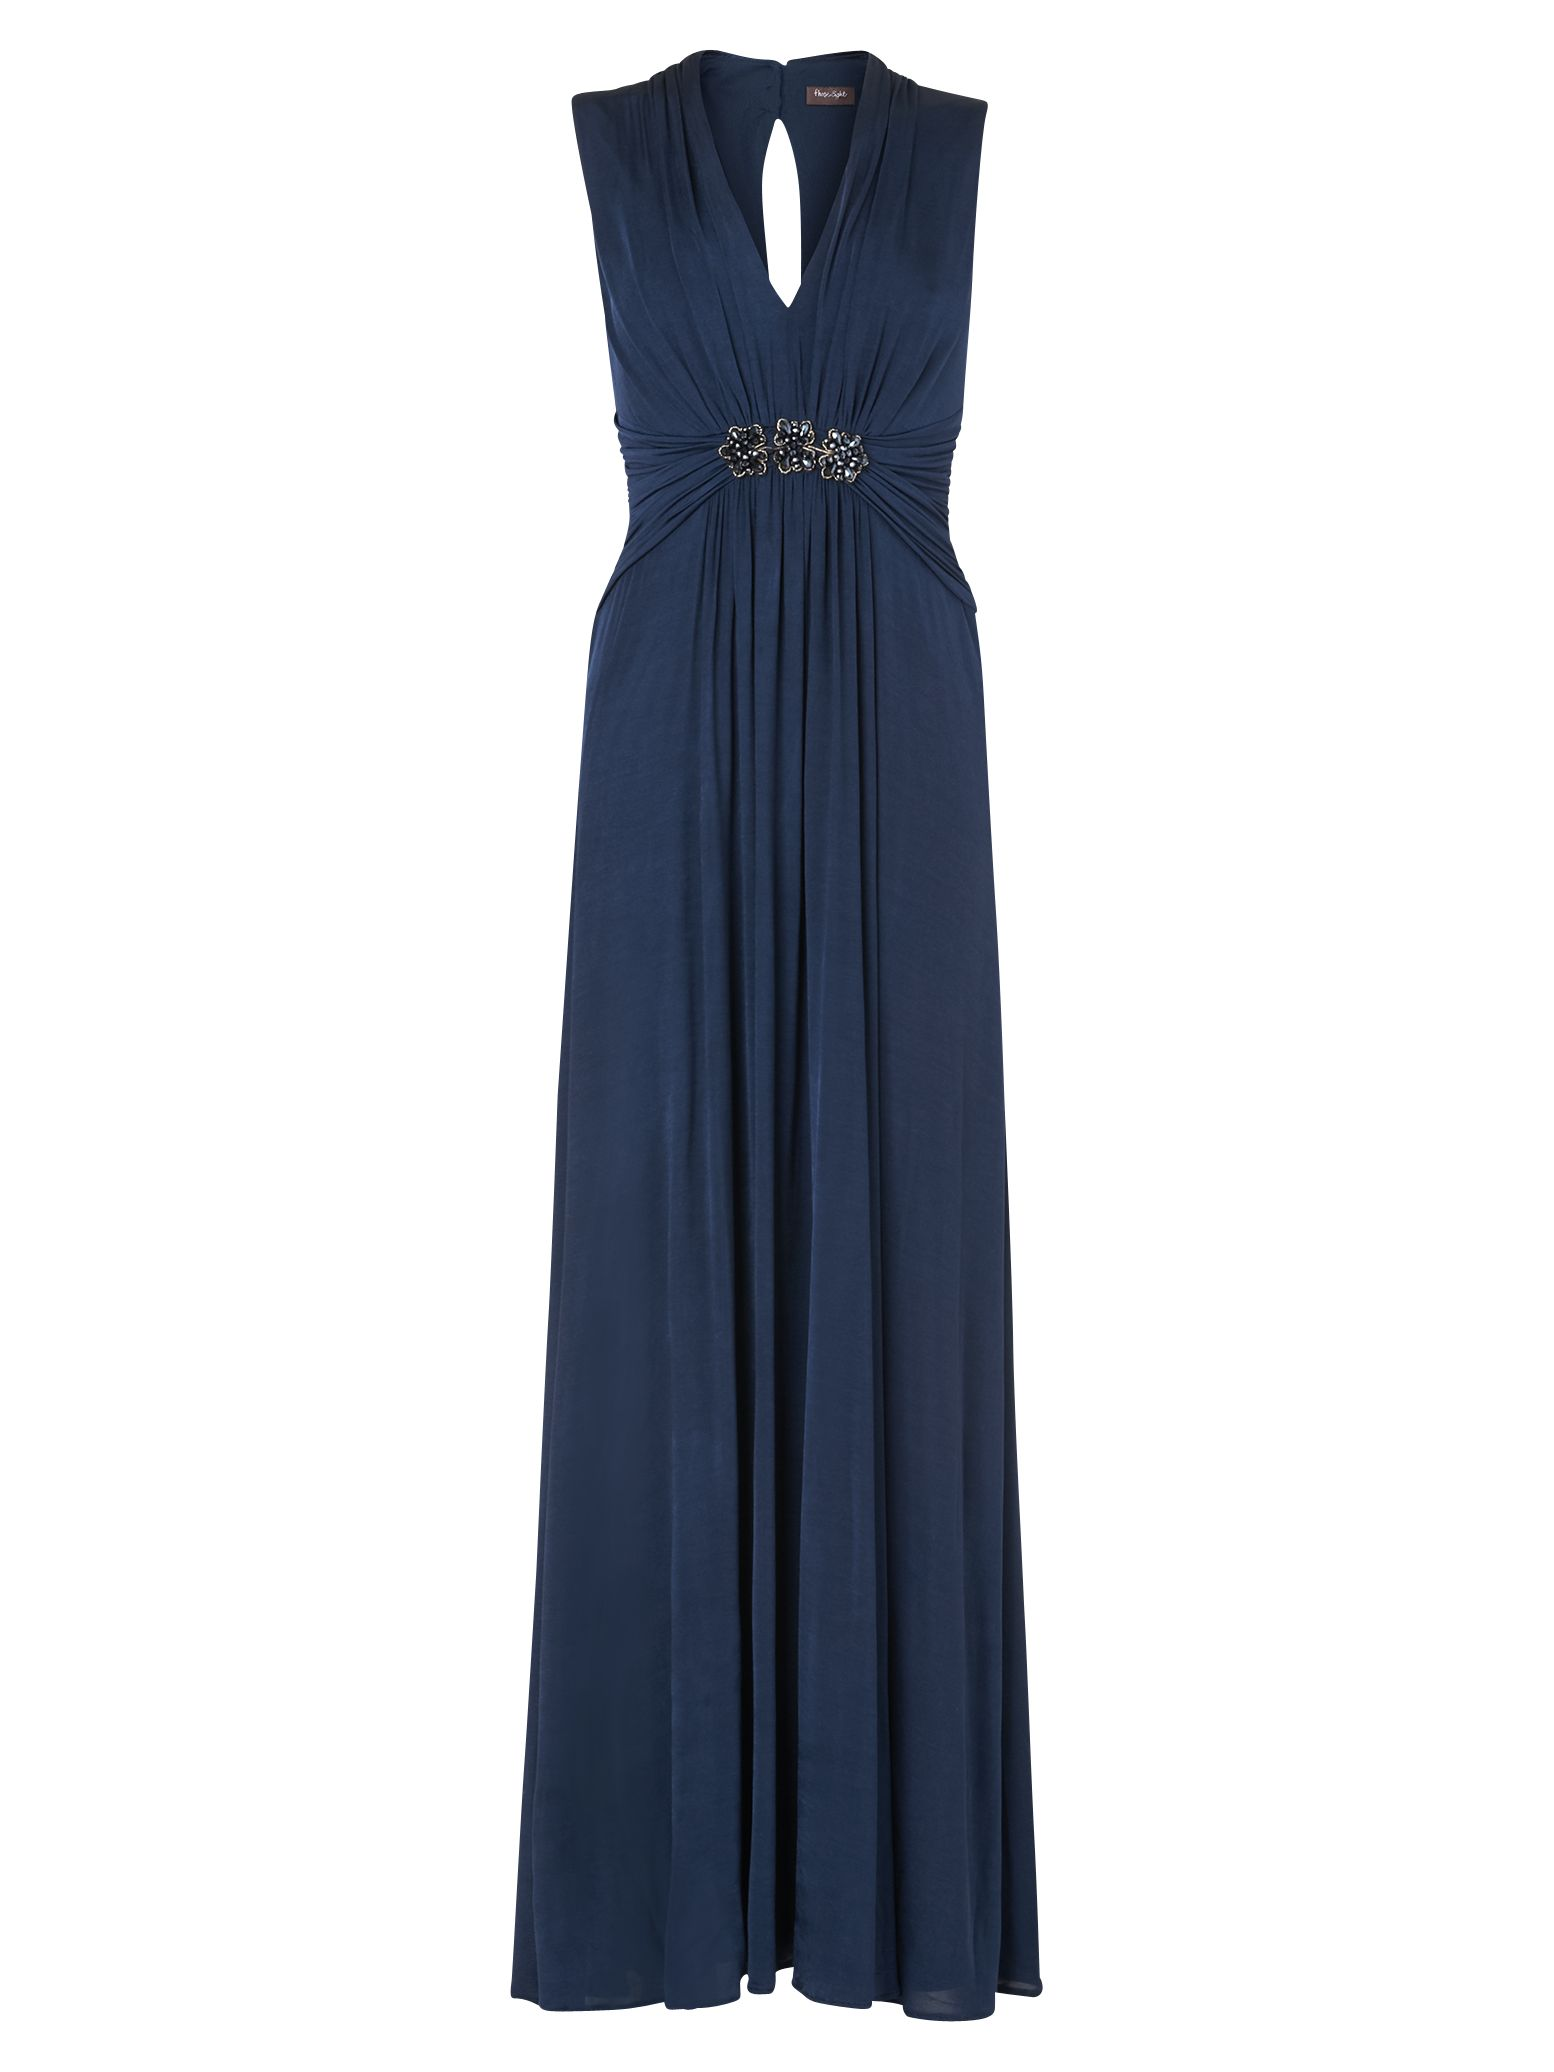 phase eight constanza embellished maxi dress storm, phase, eight, constanza, embellished, maxi, dress, storm, phase eight, 8|18|12|16|14|10, women, eveningwear, womens dresses, special offers, womenswear offers, 20% off full price phase eight, gifts, wedding, wedding clothing, adult bridesmaids, fashion magazine, brands l-z, inactive womenswear, 1865358